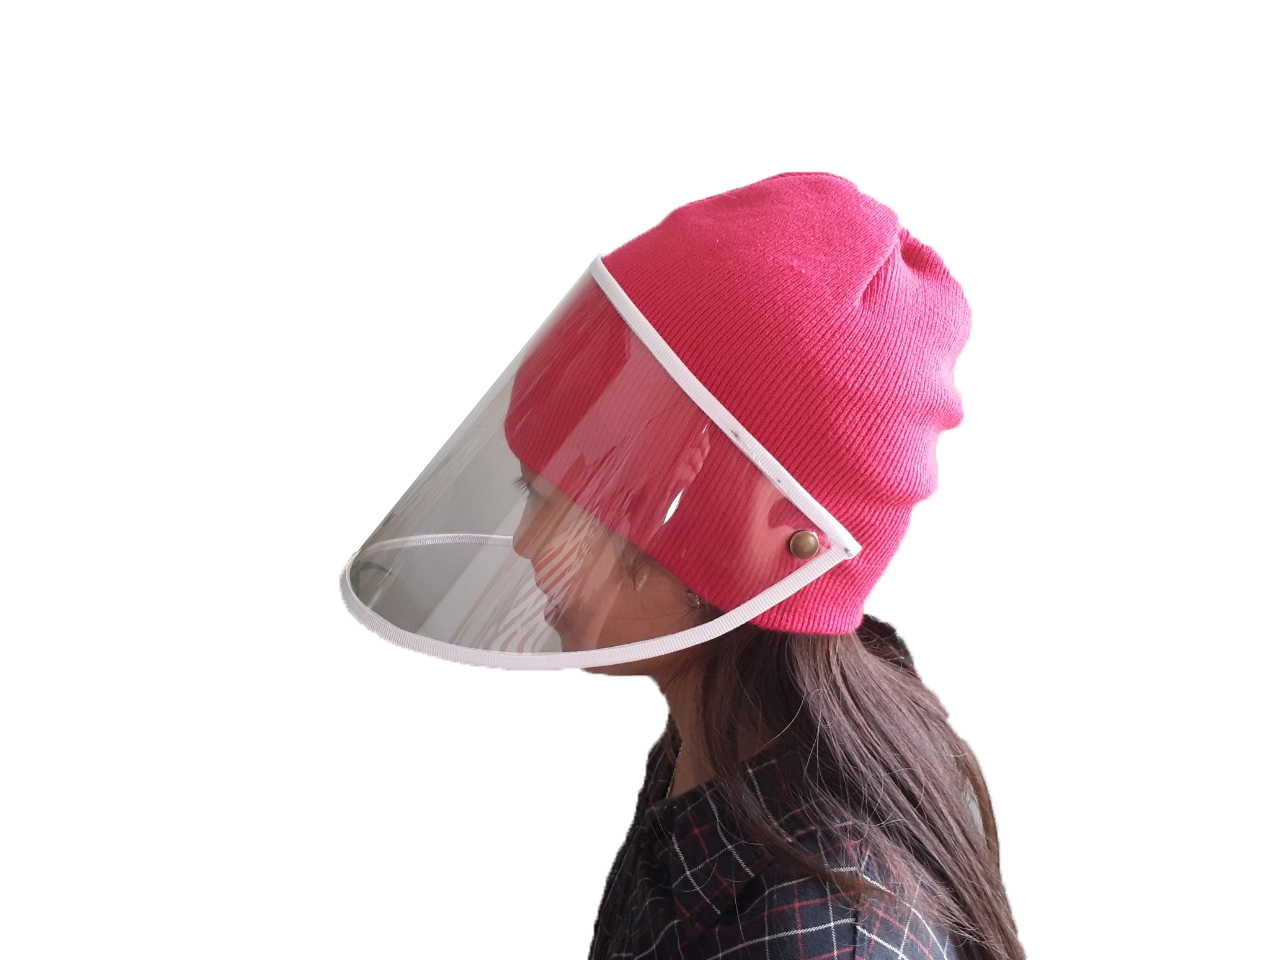 Mask hat . Cap with PVC transparent protection . Size fit at all for adults. Children . Very useful . Comfortable in shops. Restaurants. Factory or going out in city